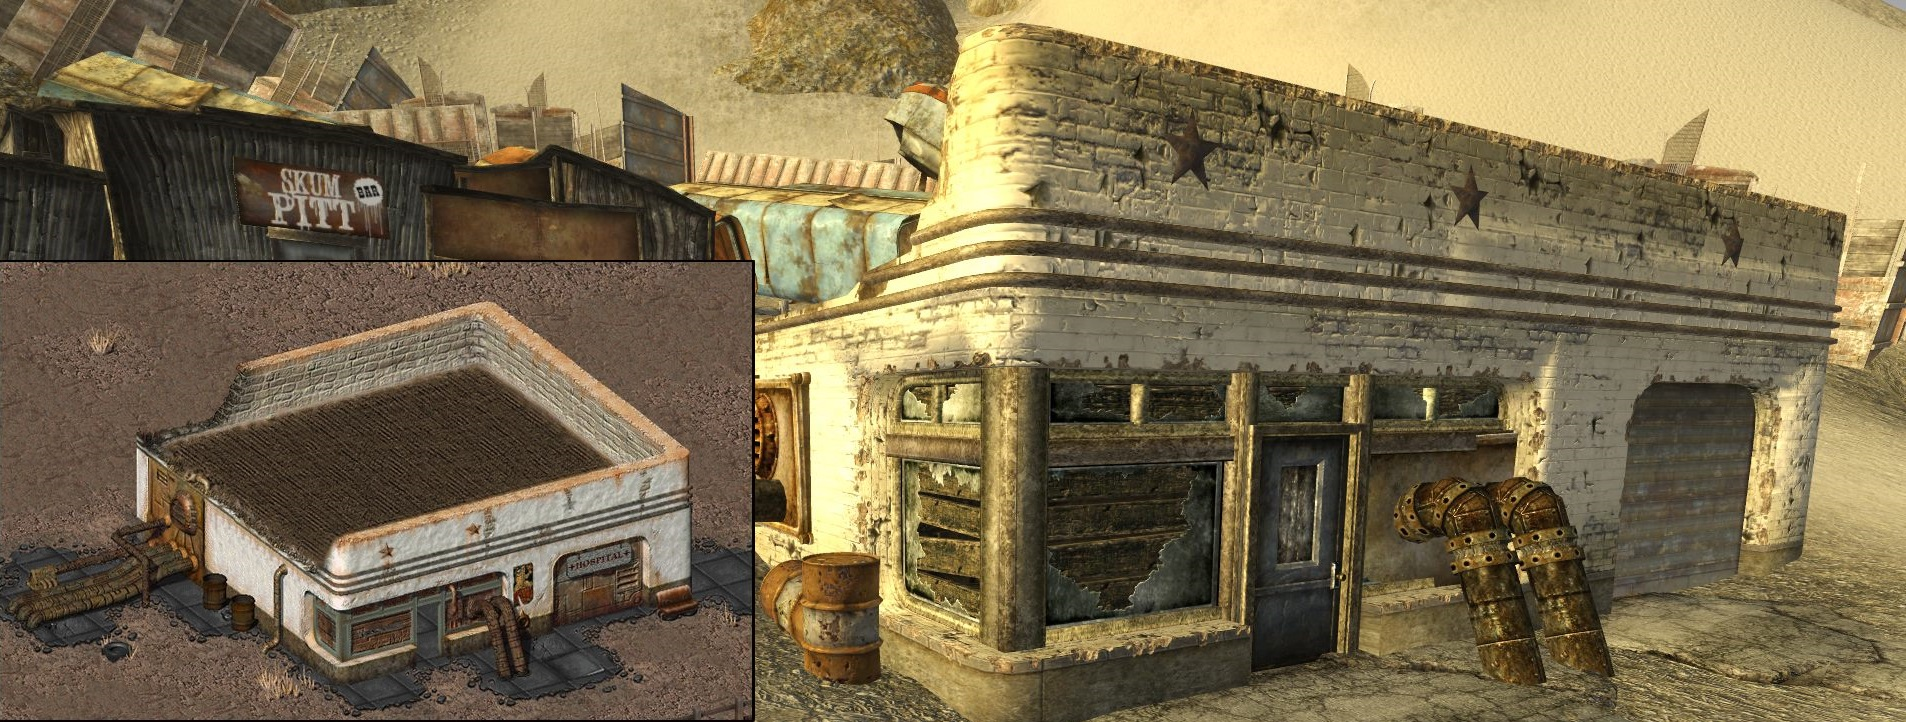 Fallout - The Story - Old and New in one picture